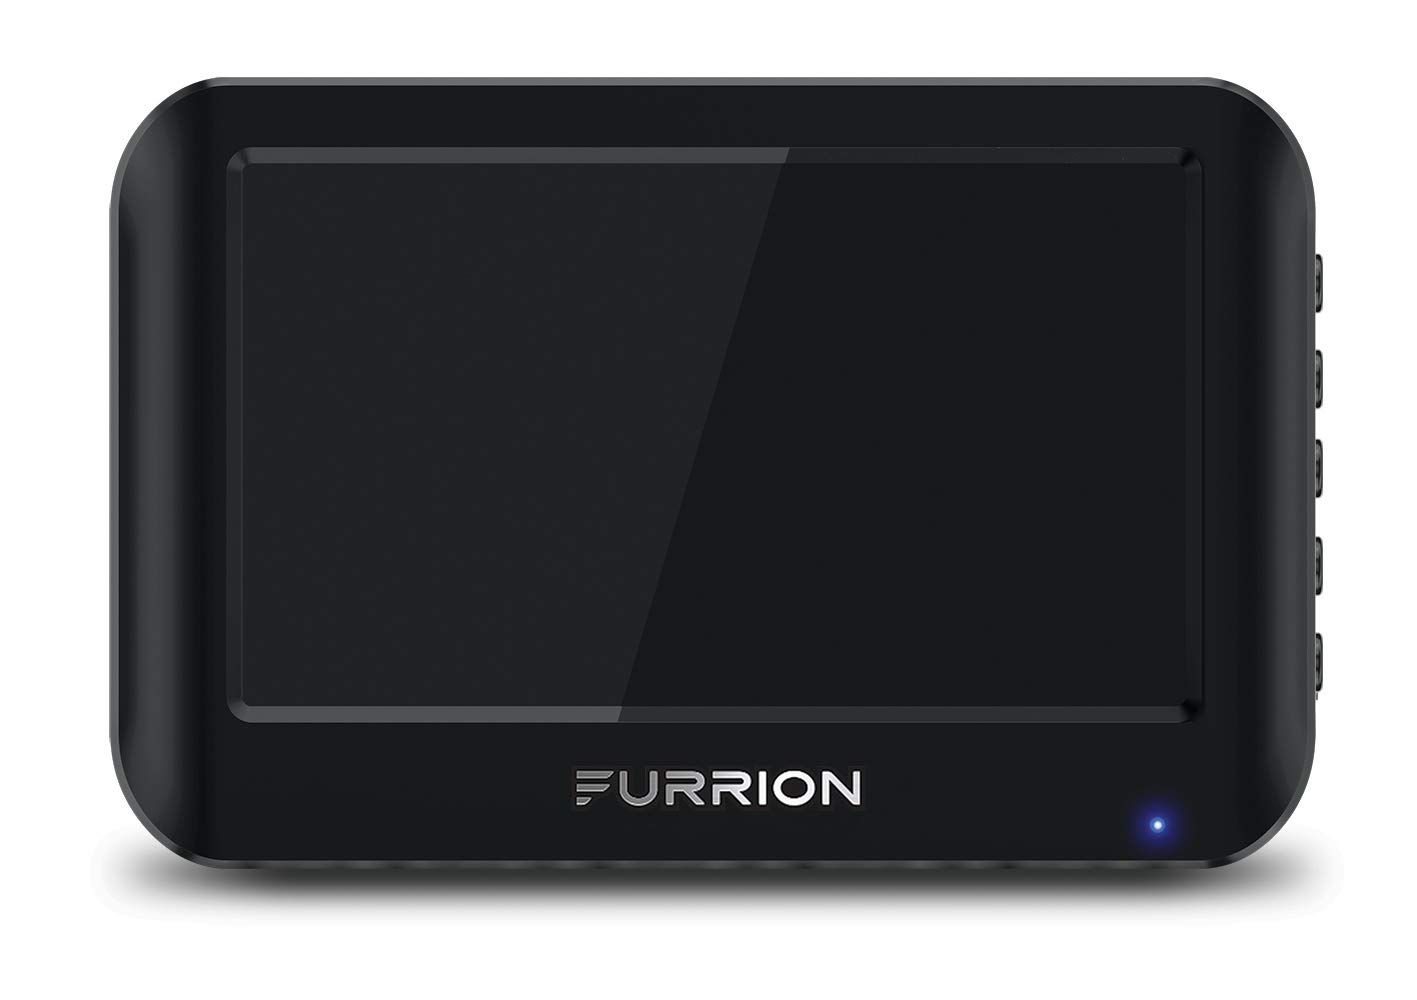 Furrion FOS43TASR Vision S Wireless, Waterproof, RV Vehicle Observation System with 4.3-inch Monitor, and 1 Rear Backup Camera with Marker Light by Furrion (Image #2)